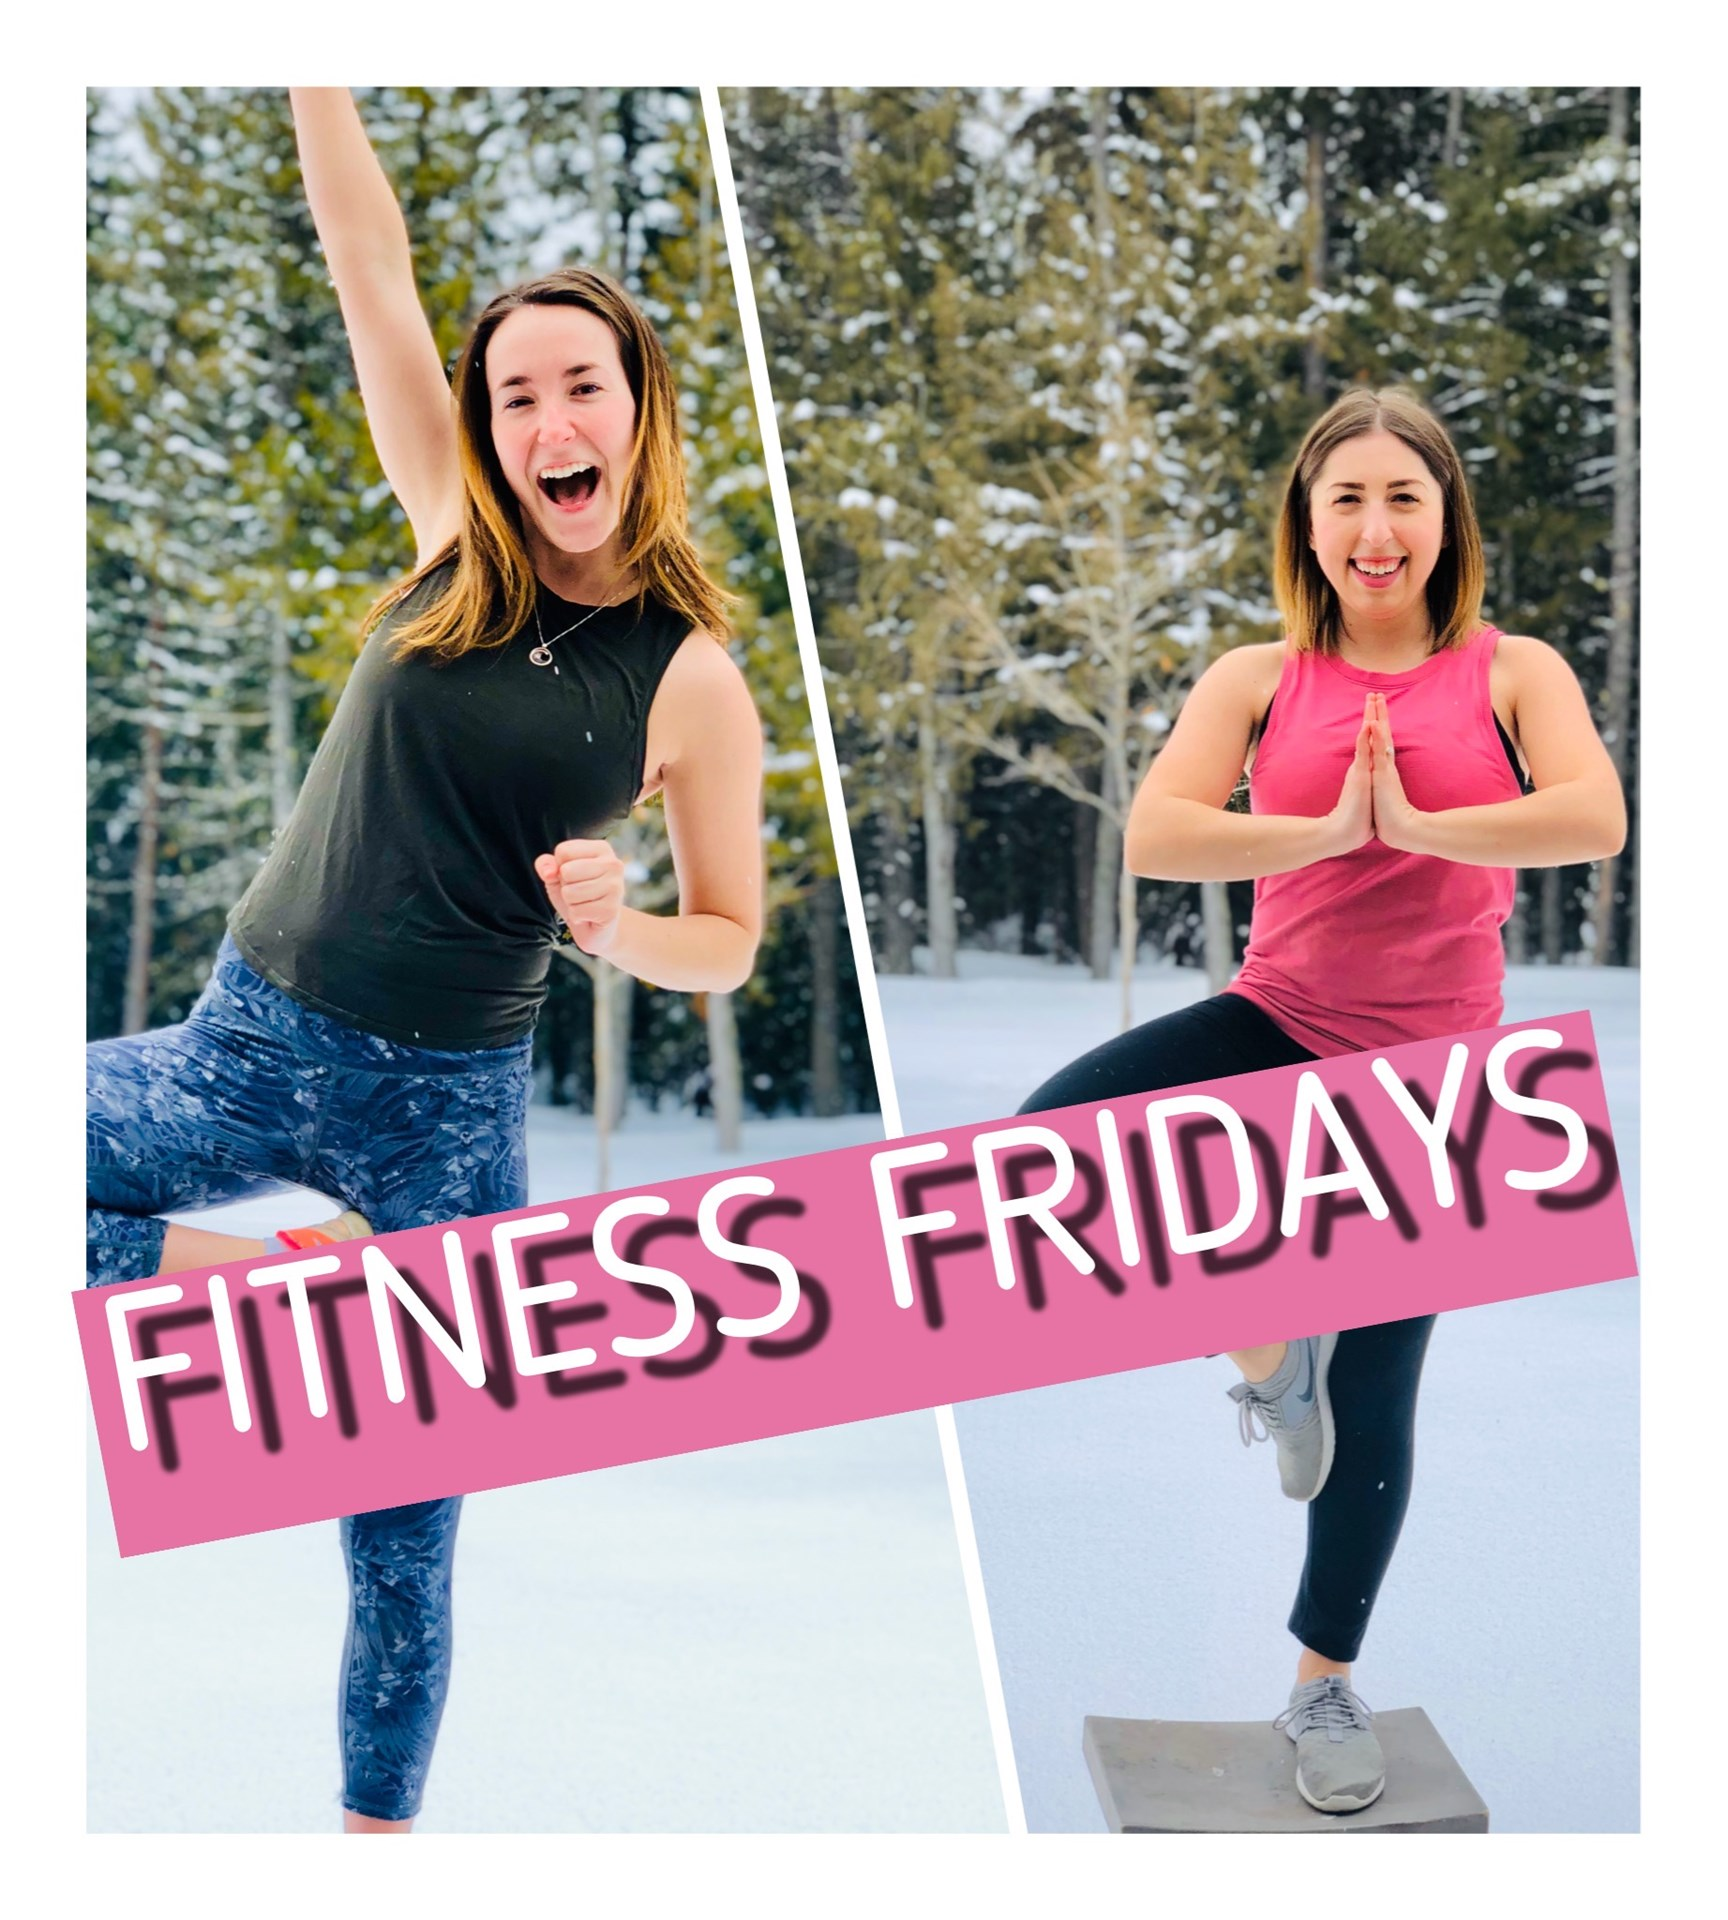 Fitness Fridays with Miss. Stremecki and Miss. McMullan